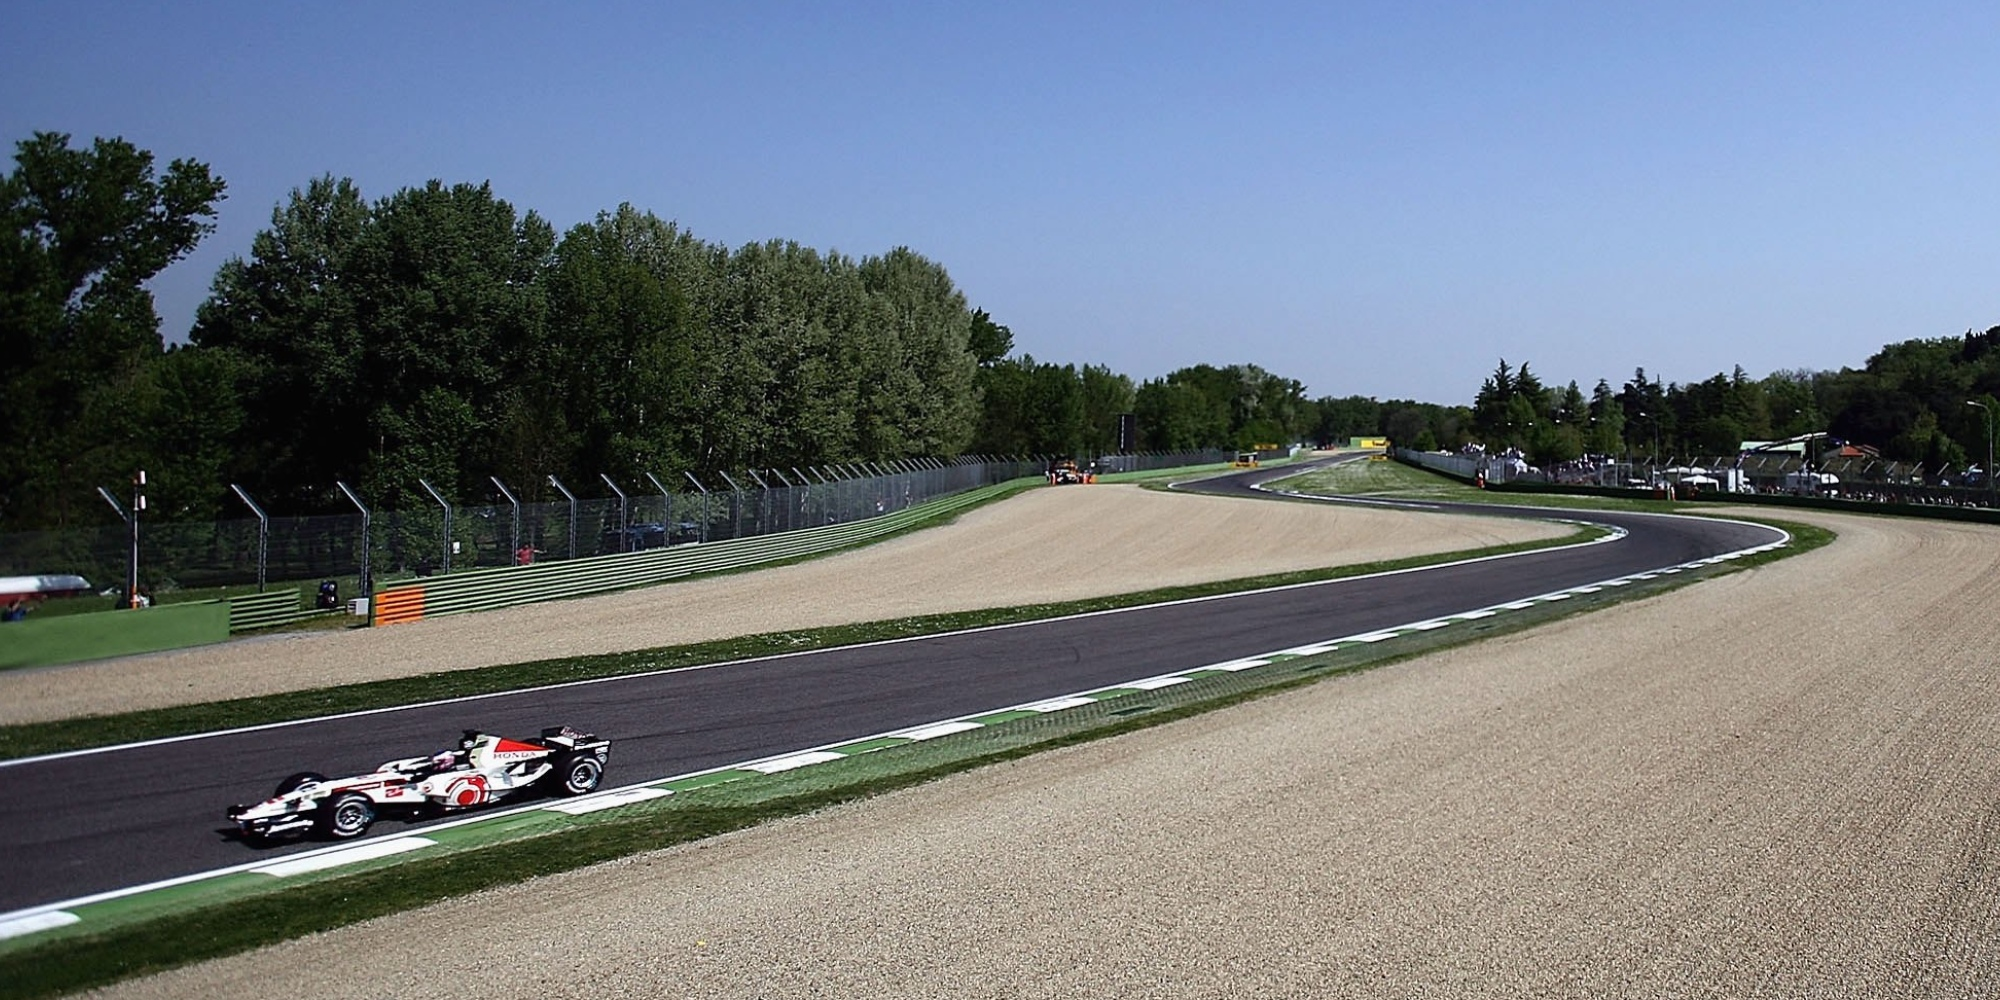 Only one practice session before qualifying when F1 returns to Imola